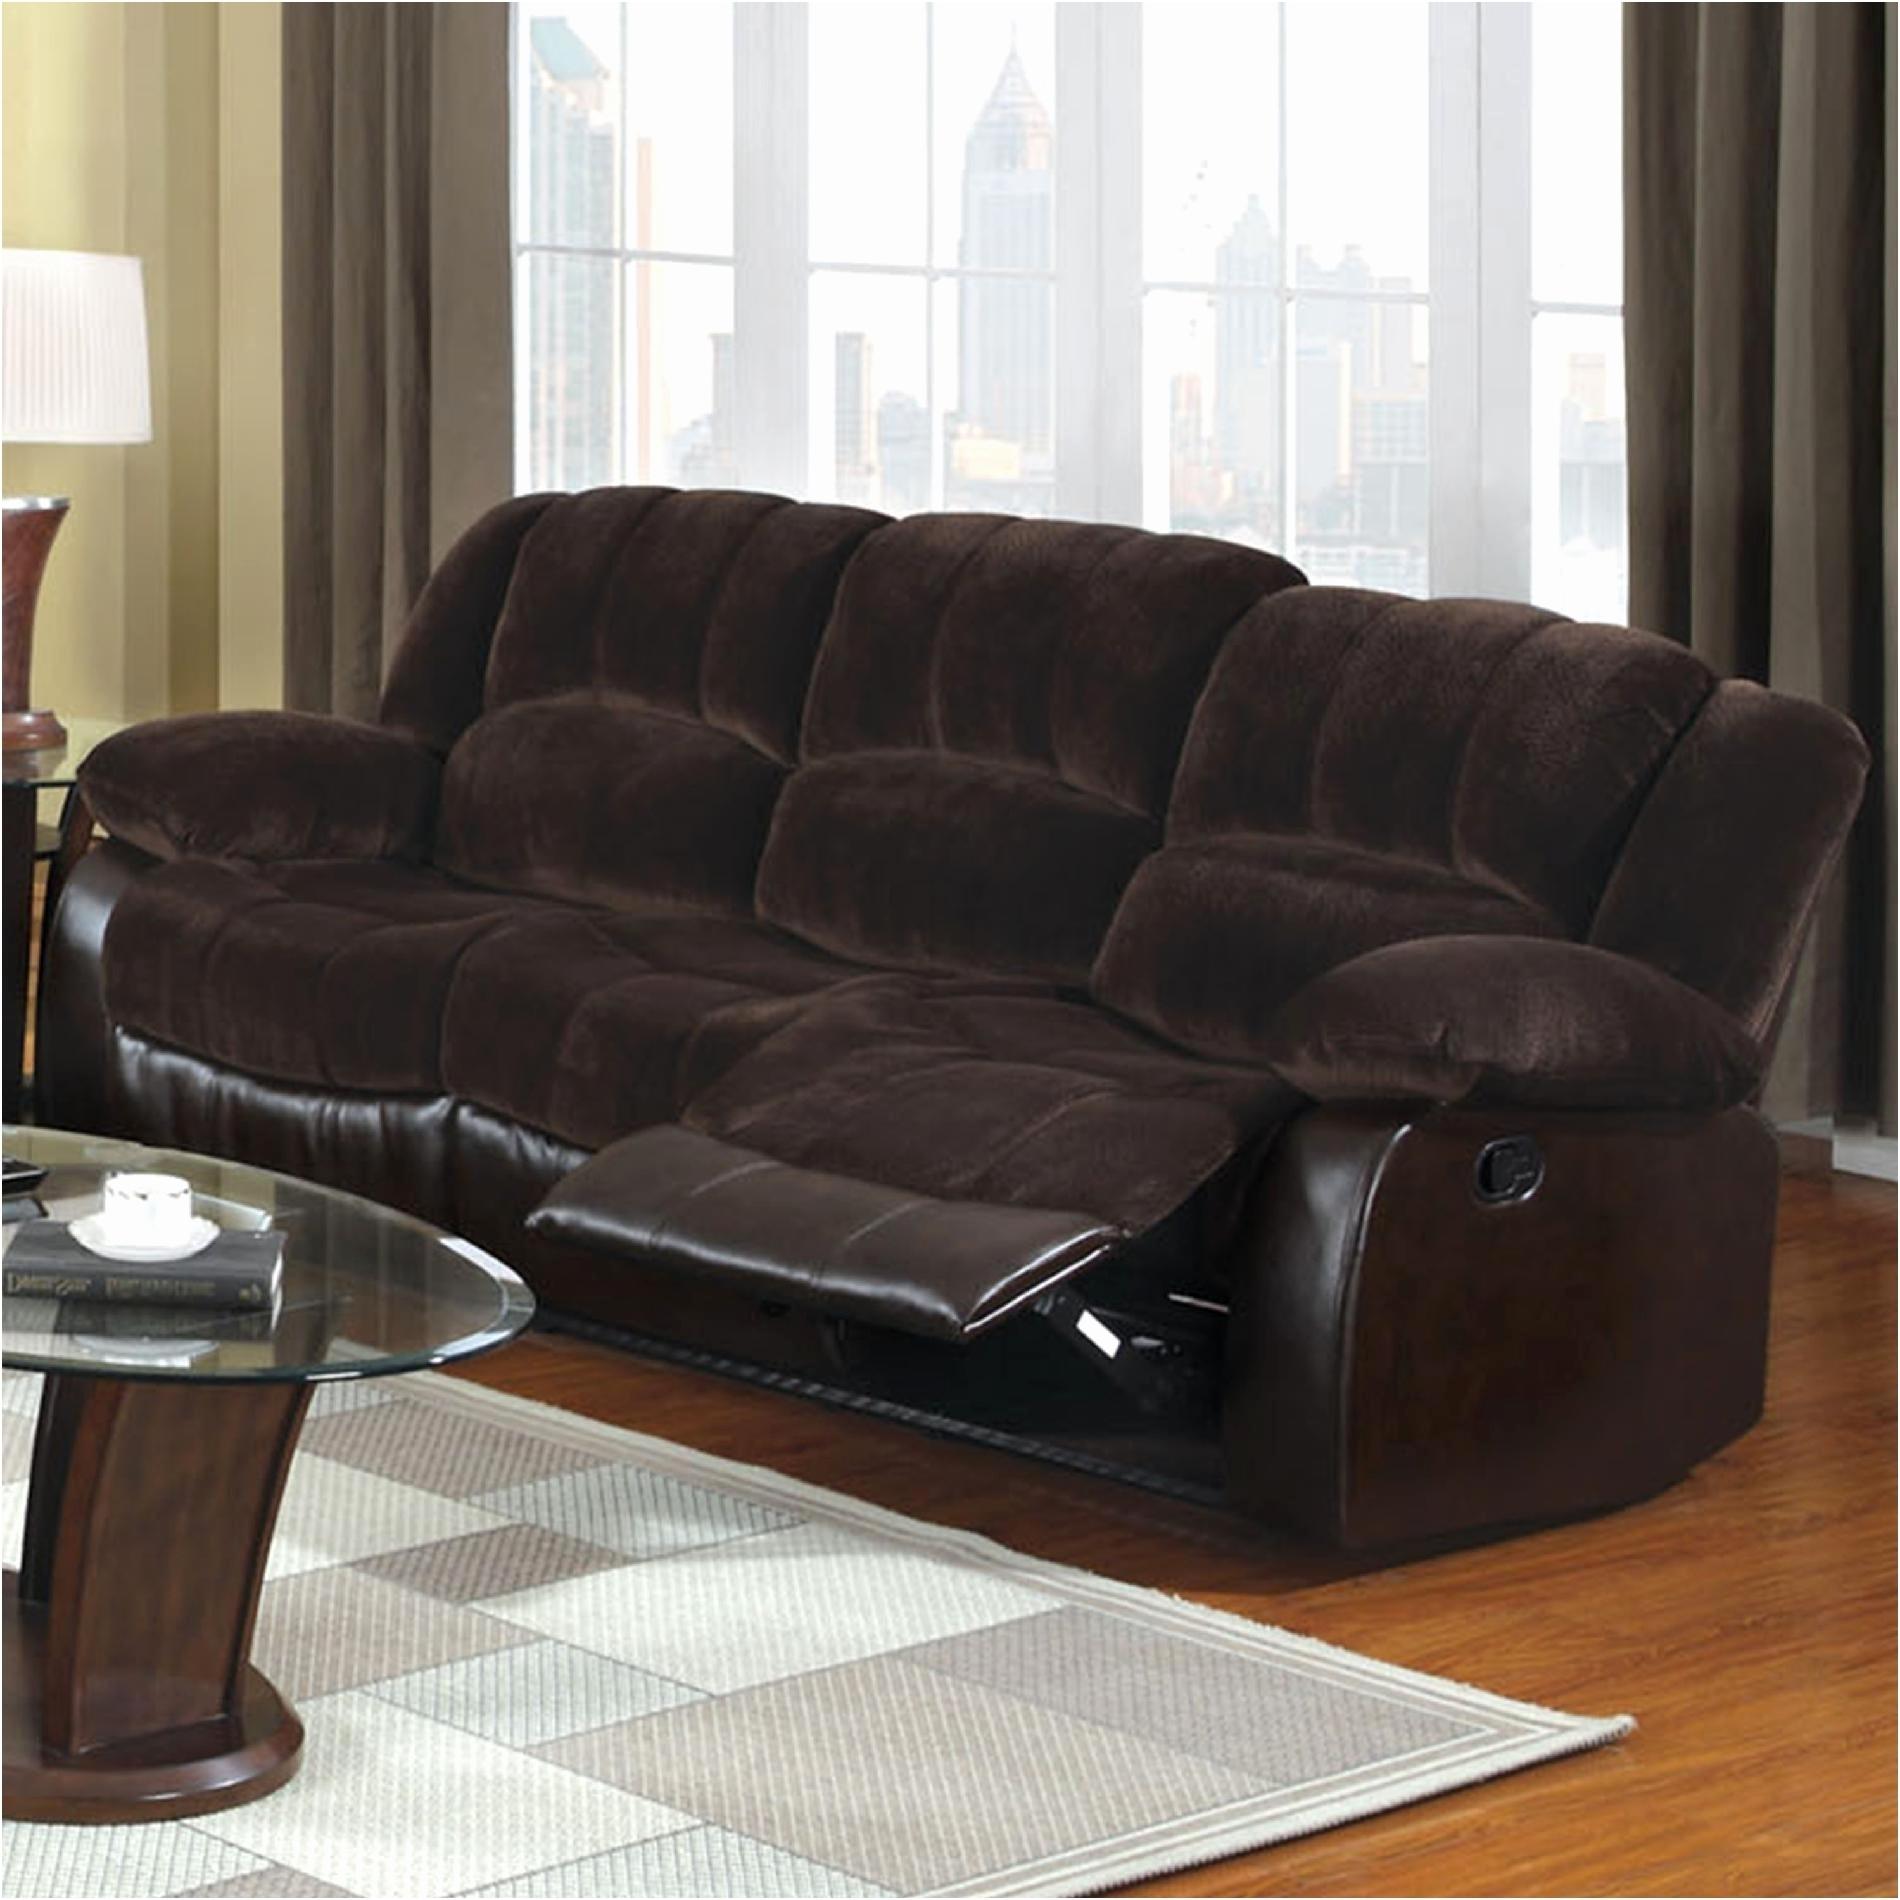 Trendy Sears Sectional Sofas Pertaining To Fresh Sears Leather Sofa New – Intuisiblog (View 18 of 20)